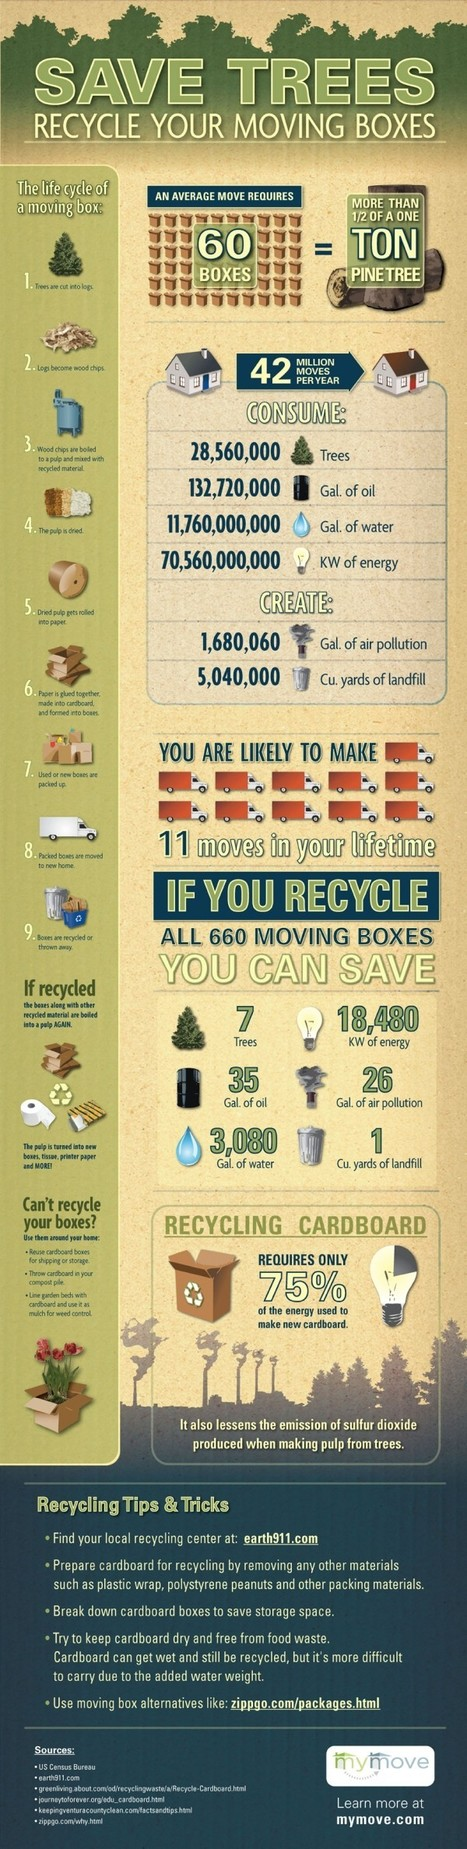 Environment - How to Save Trees by Recycling Unused Stuffs | All Infographics | L'isola del Bio | Scoop.it